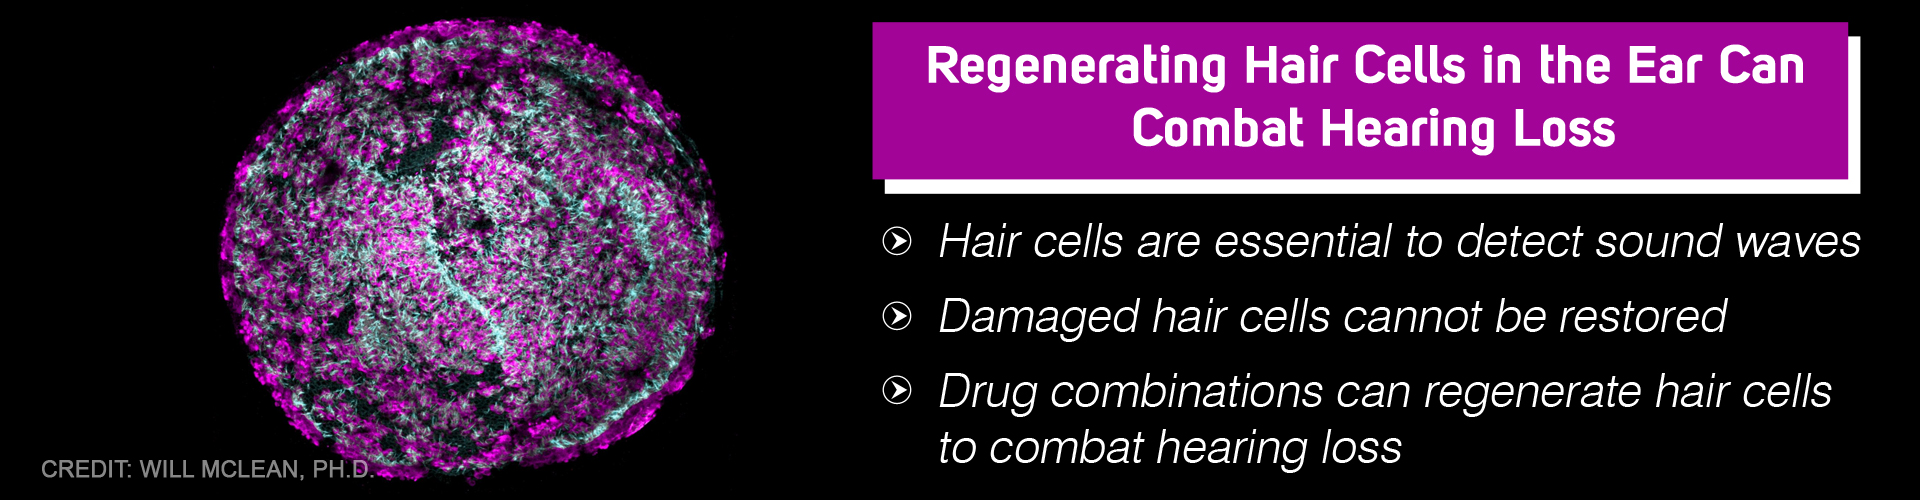 Drug Combination That Regenerate Hair Cells Can Combat Hearing Loss